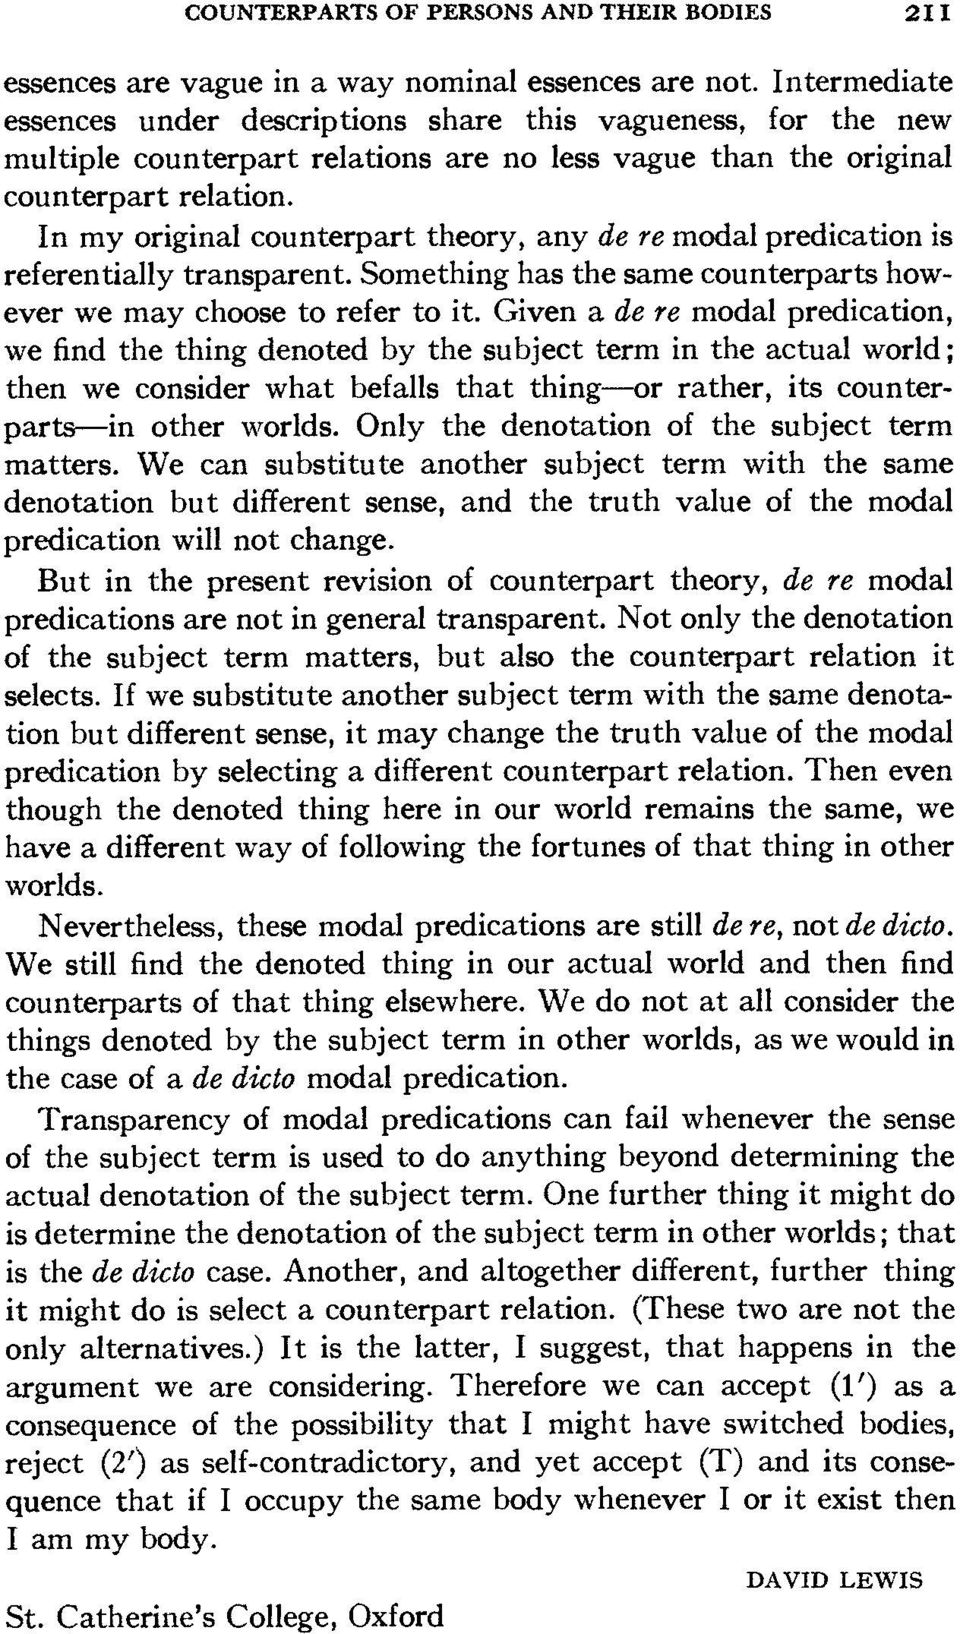 In my original counterpart theory, any de re modal predication is referentially transparent. Something has the same counterparts however we may choose to refer to it.